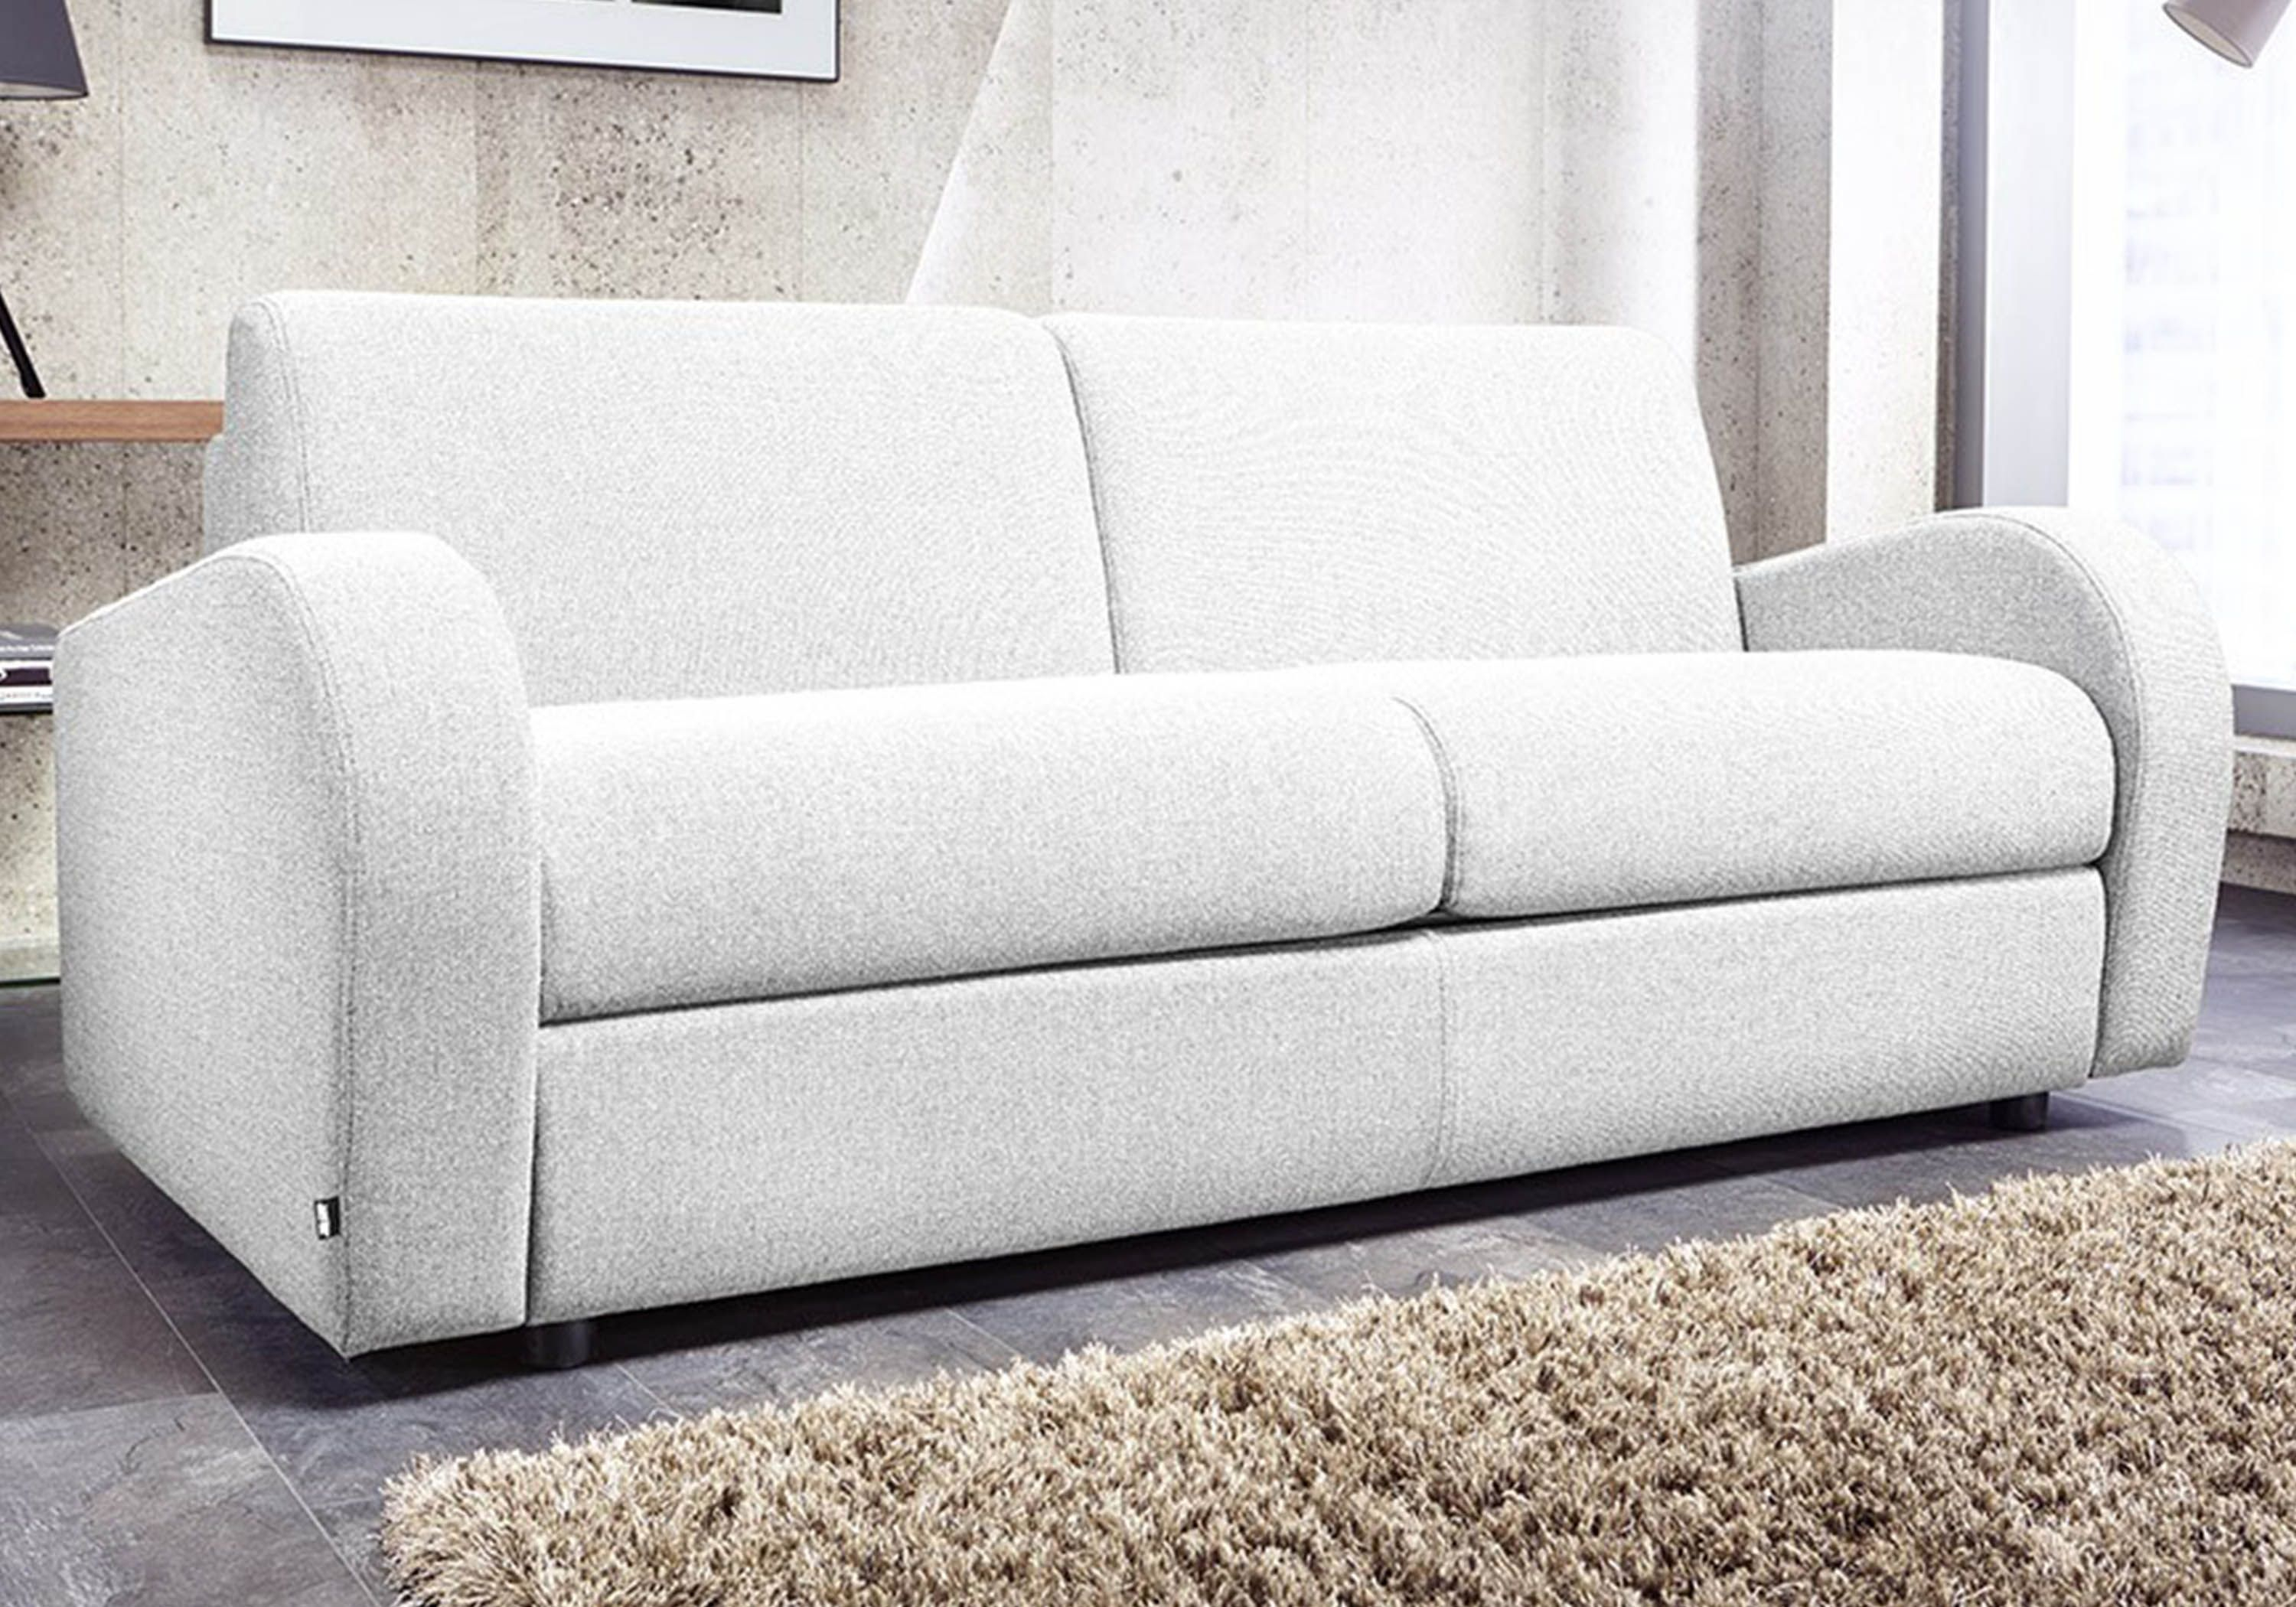 Jay Be Retro Deep Sprung 3 Seater Sofa Bed inside proportions 3000 X 2100